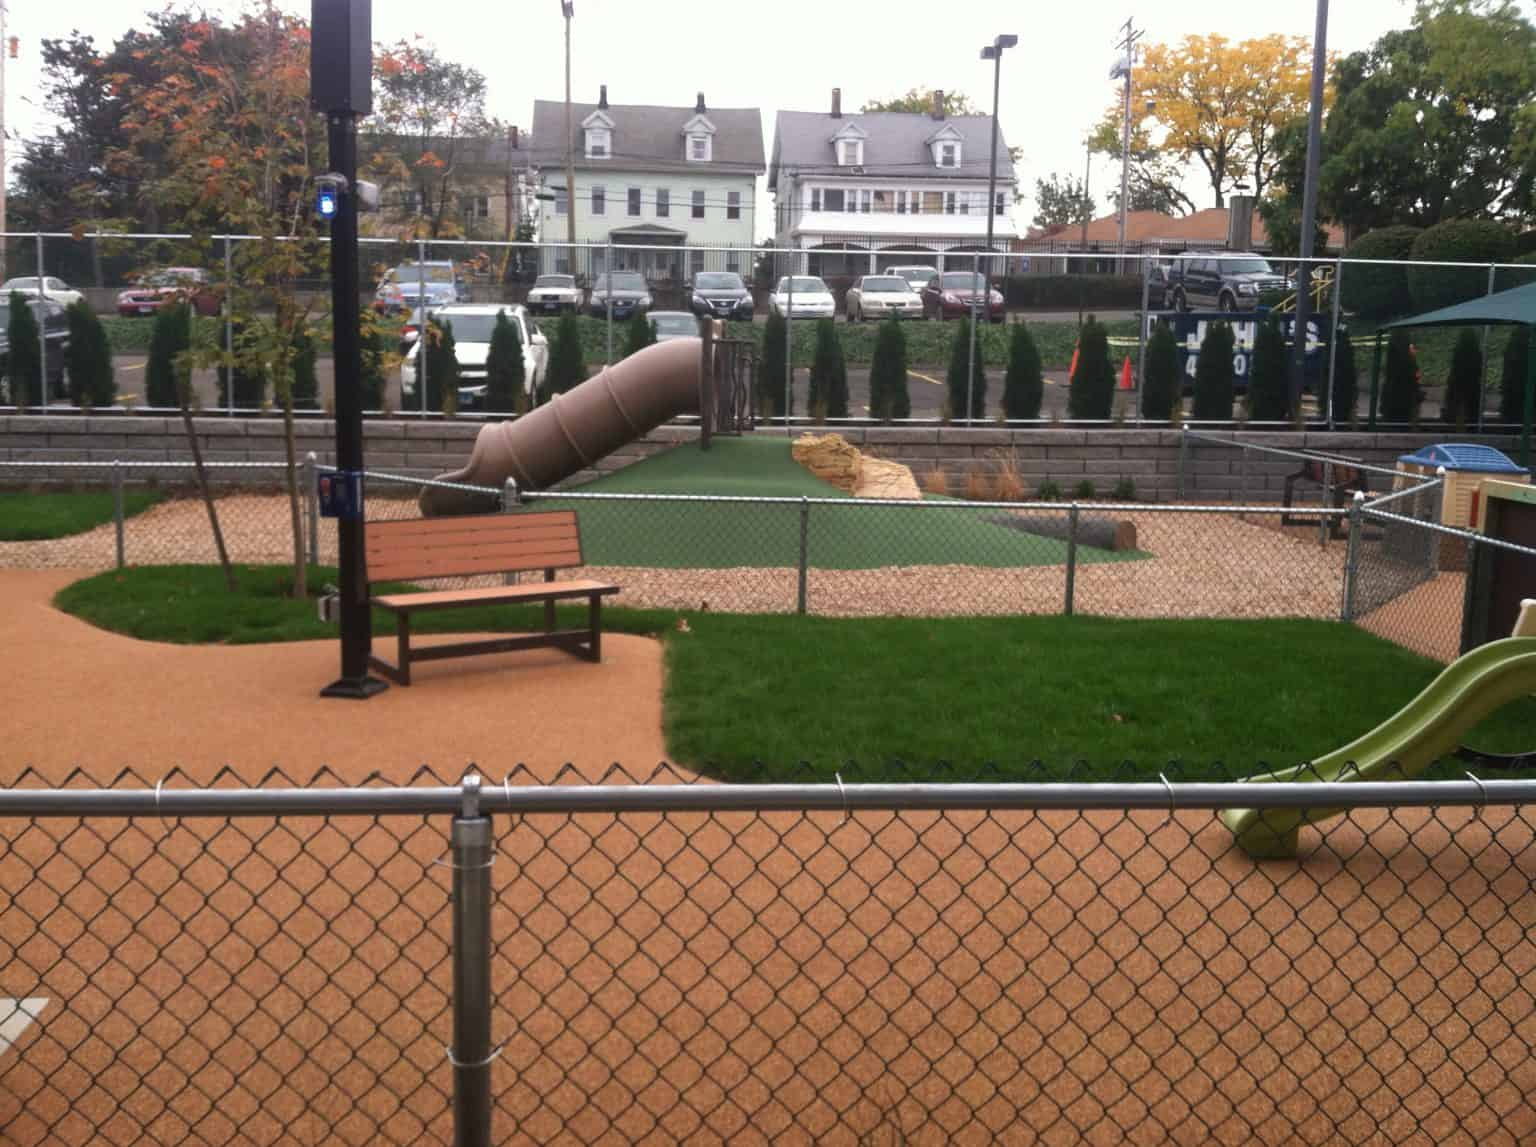 phyllis-bodel-daycare-playground-new-haven-ct_18128613151_o-1536x1147